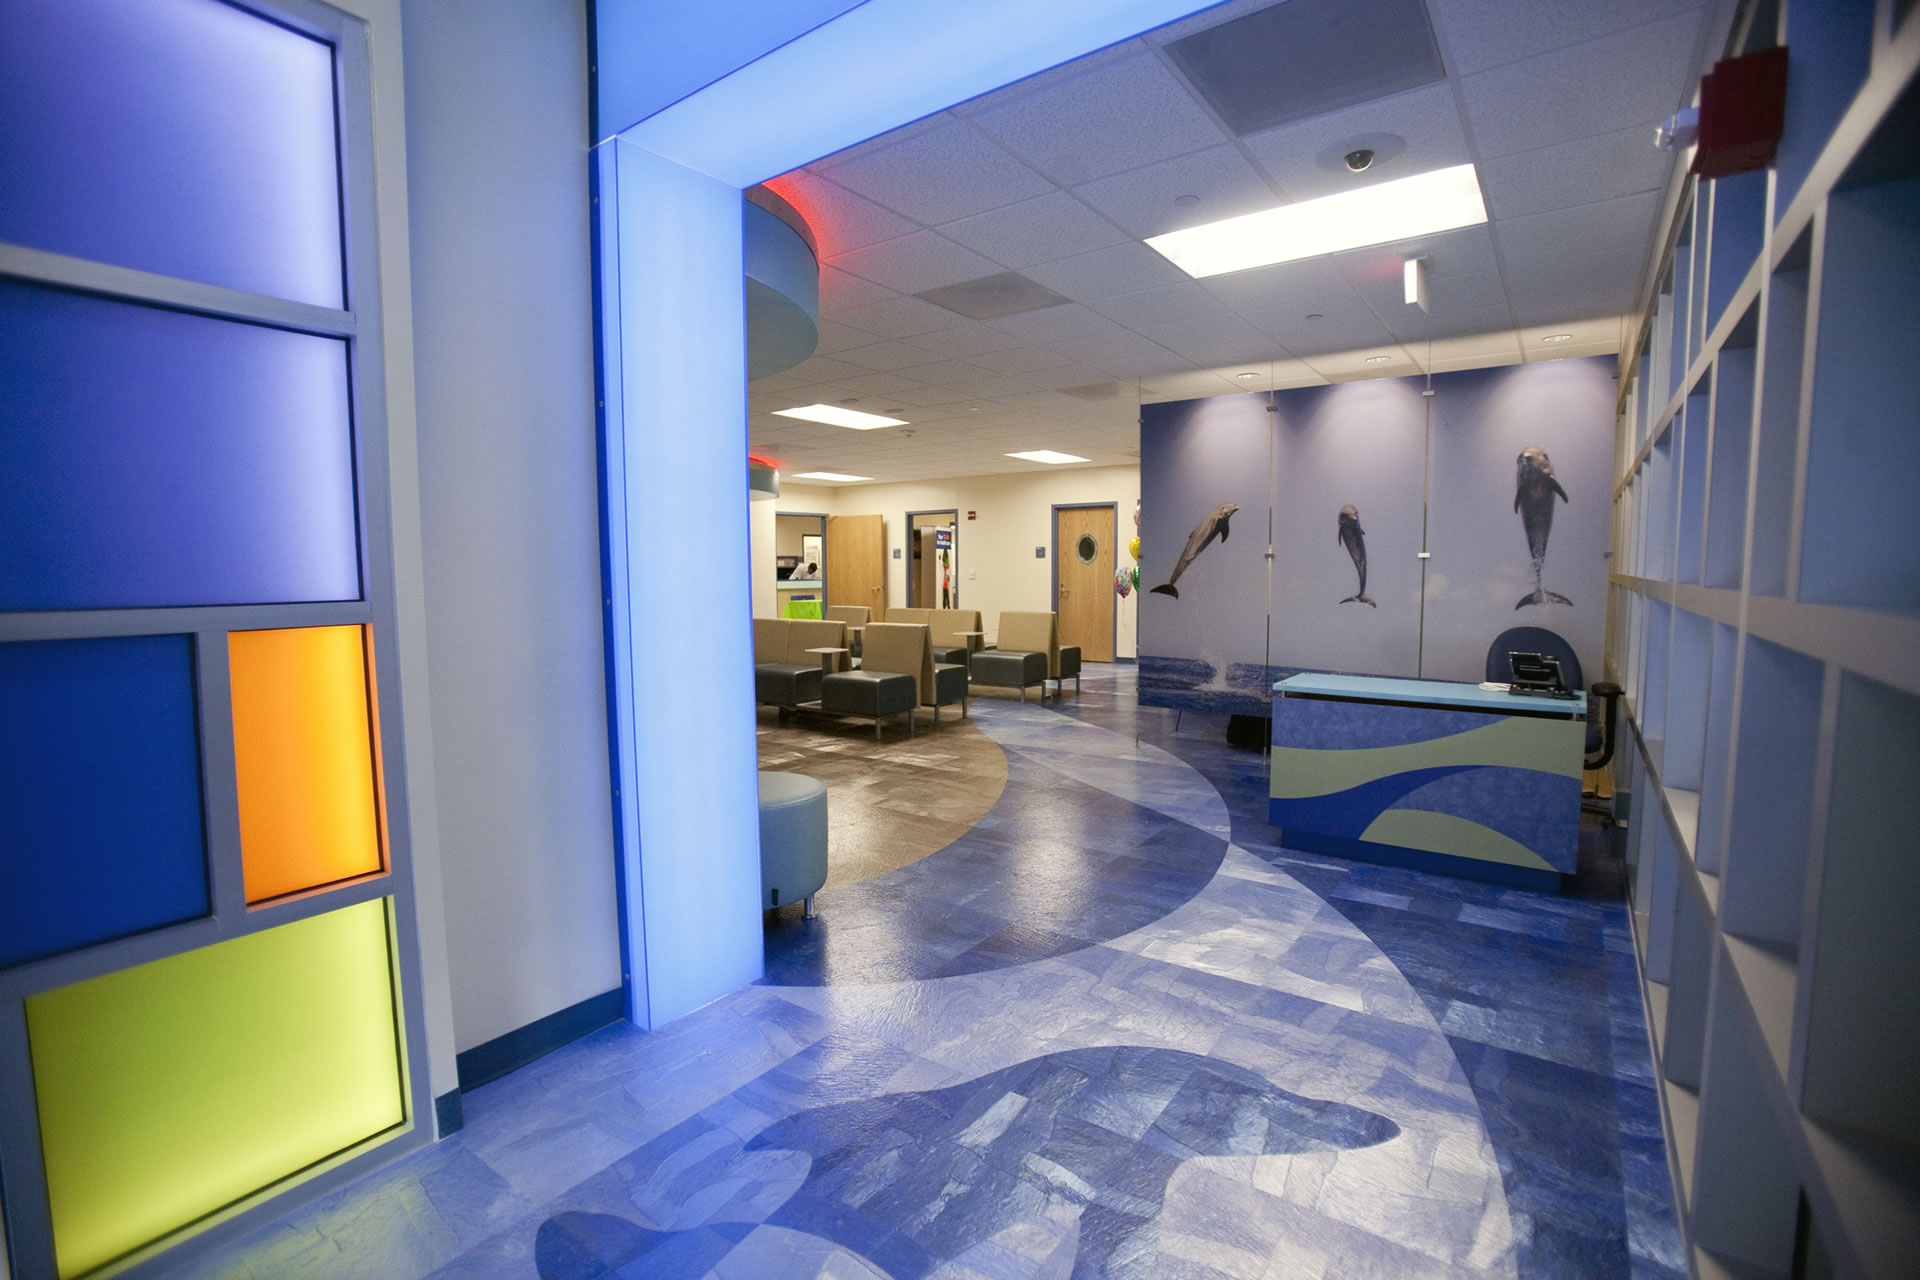 an overview of the primary care clinic located in childrens hospital Hughes spalding hospital is located in downtown atlanta near edgewood avenue and grady memorial hospital this facility offers many services including an emergency department open 24 hours a day.